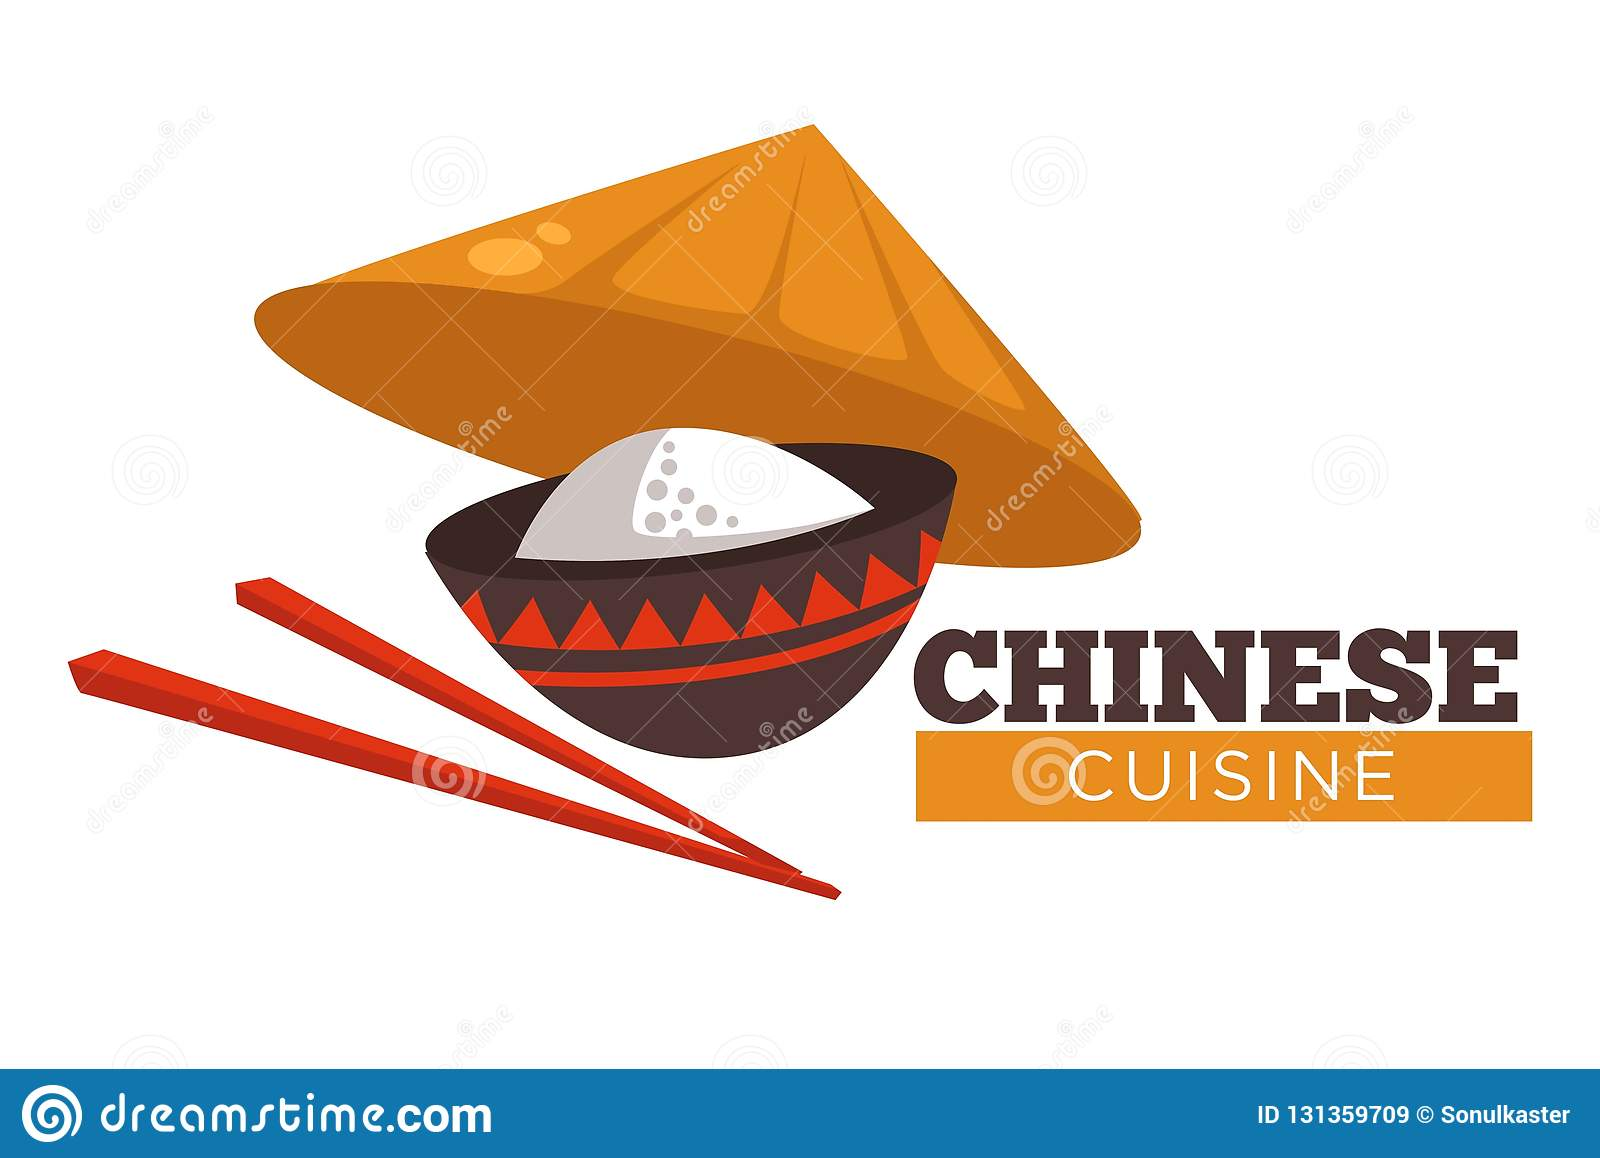 Has asian chinese cultural food oriental apologise, but